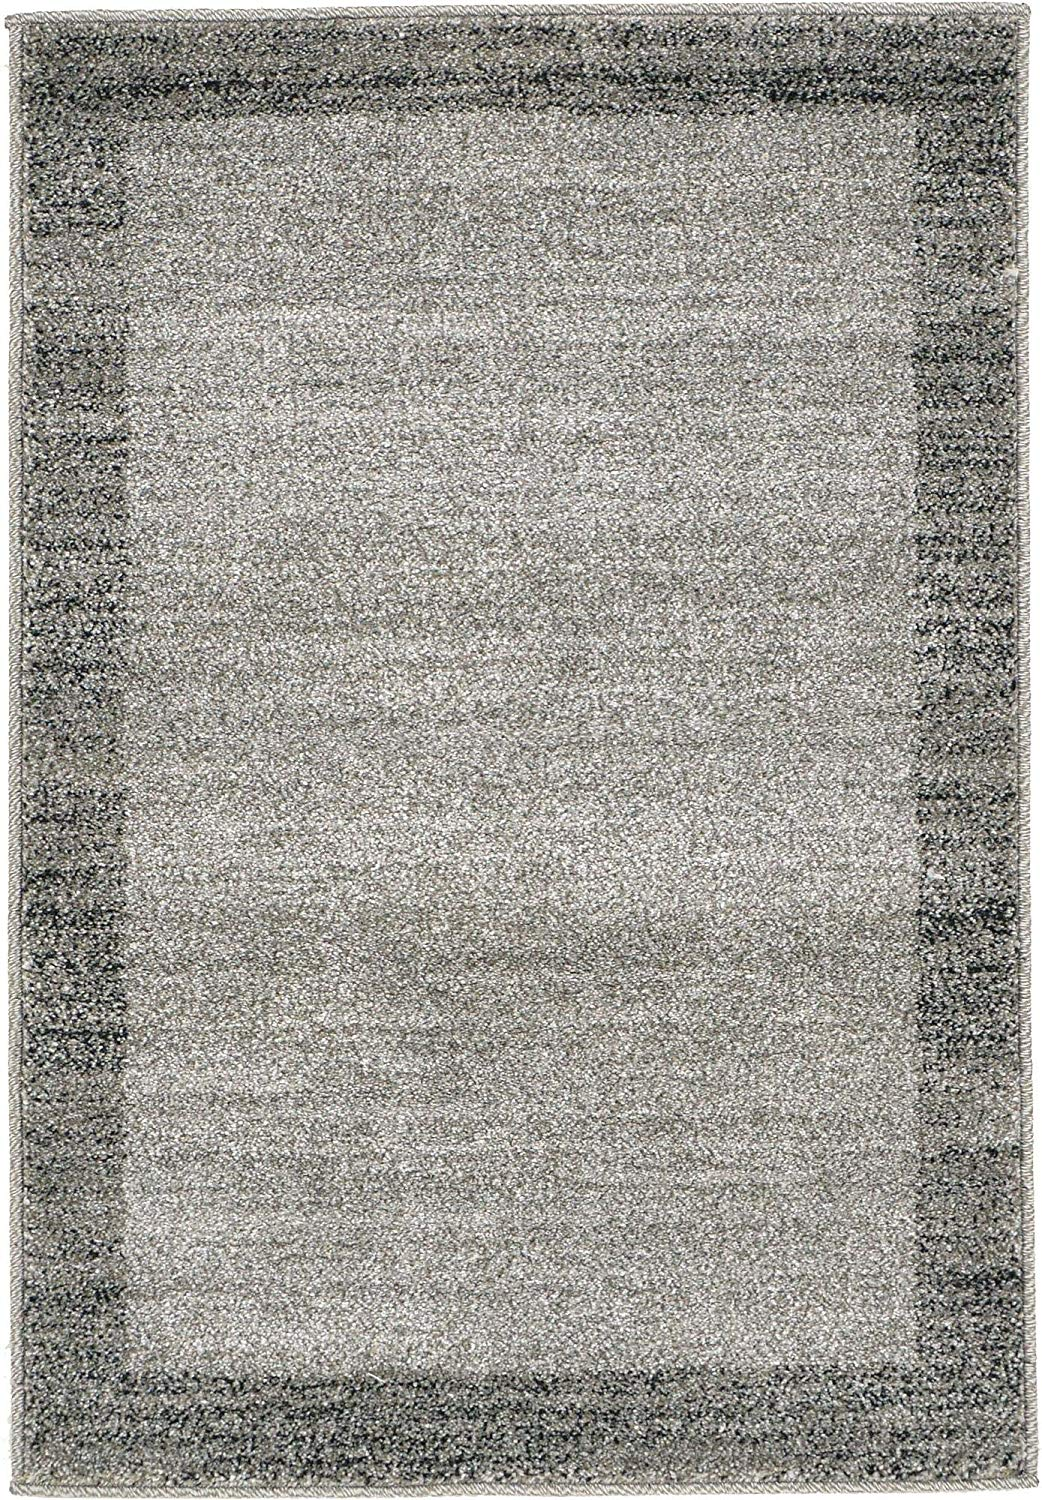 Contemporary Bordered Soft Light Gray Area Rug